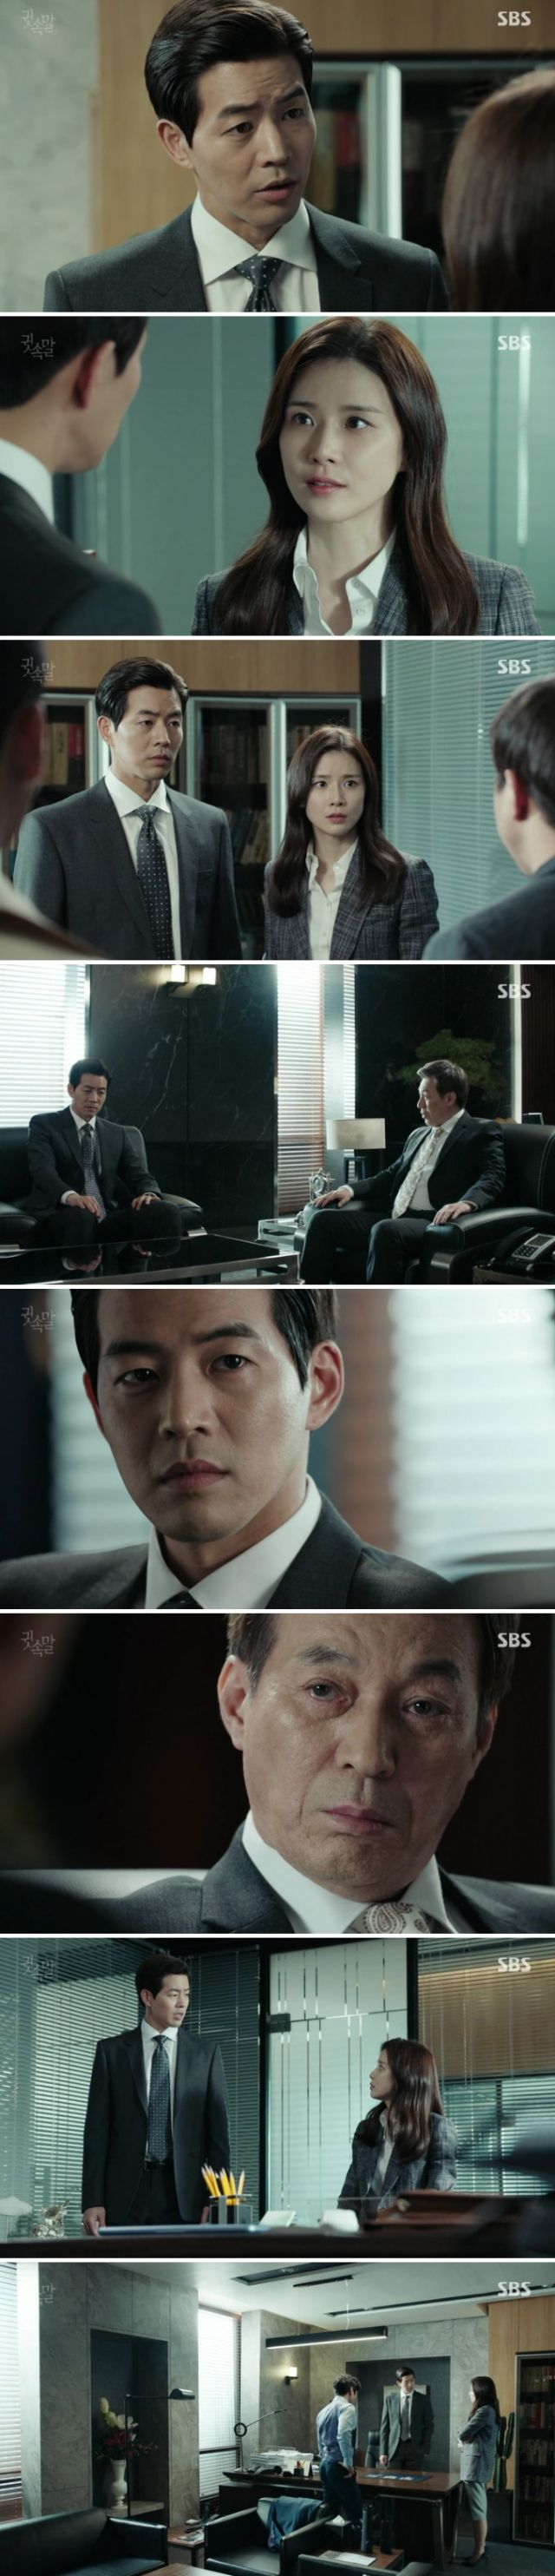 [Spoiler] Added episode 9 captures for the Korean drama 'Whisper'